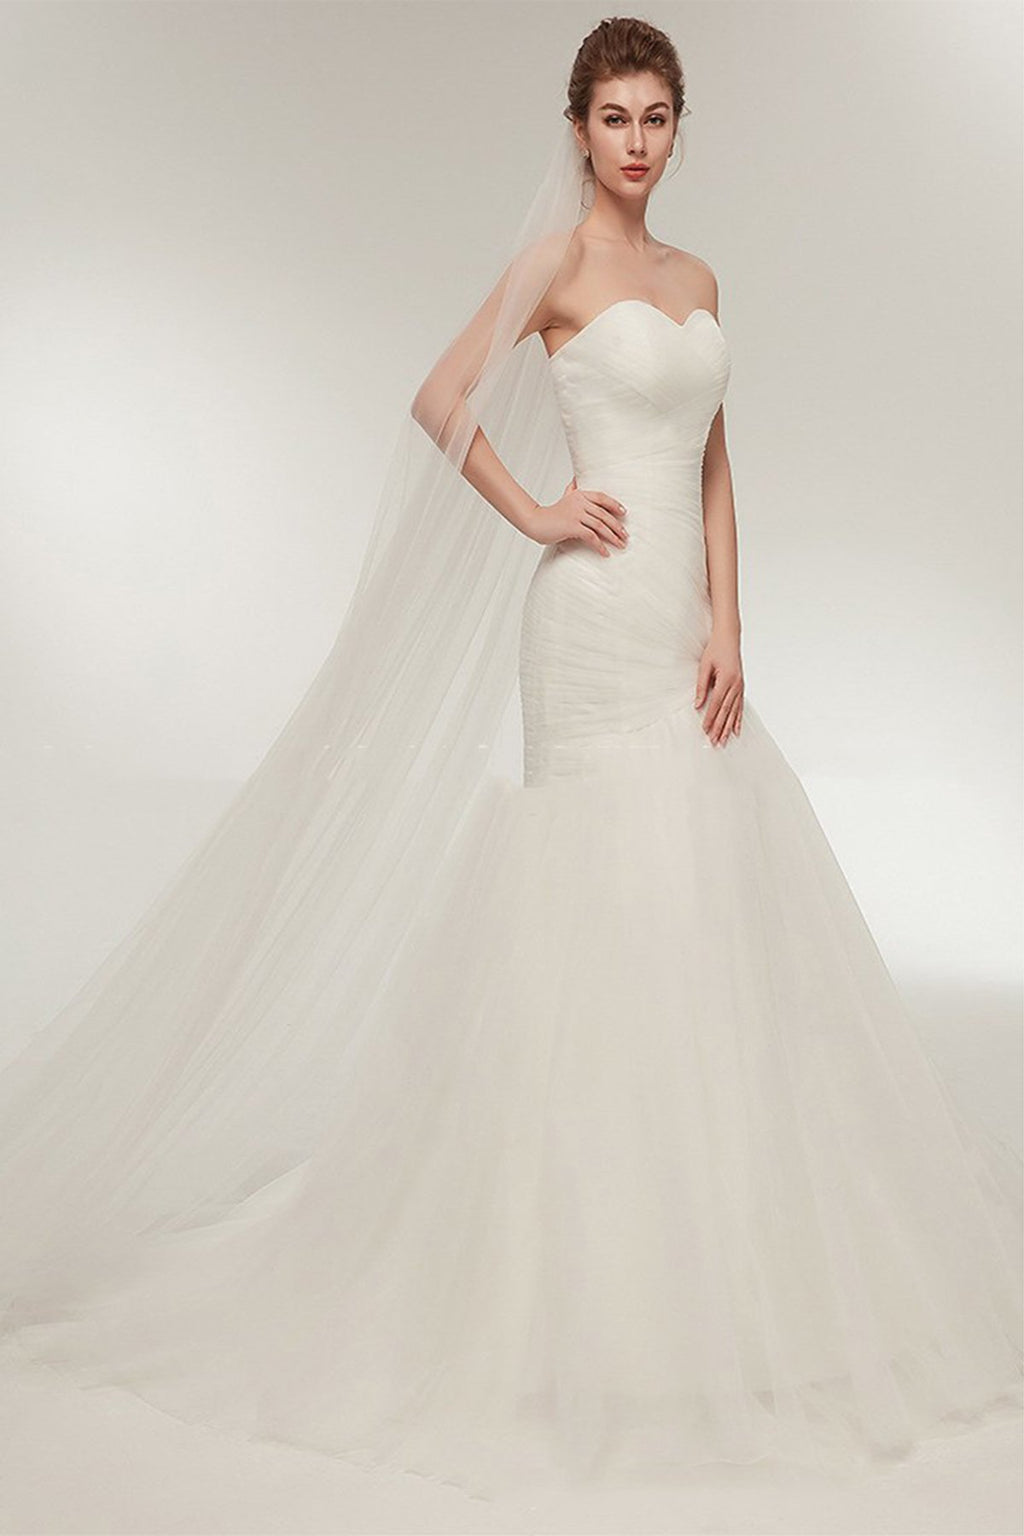 Tube Top Fishtail Sexy Wedding Dress Wedding Dress